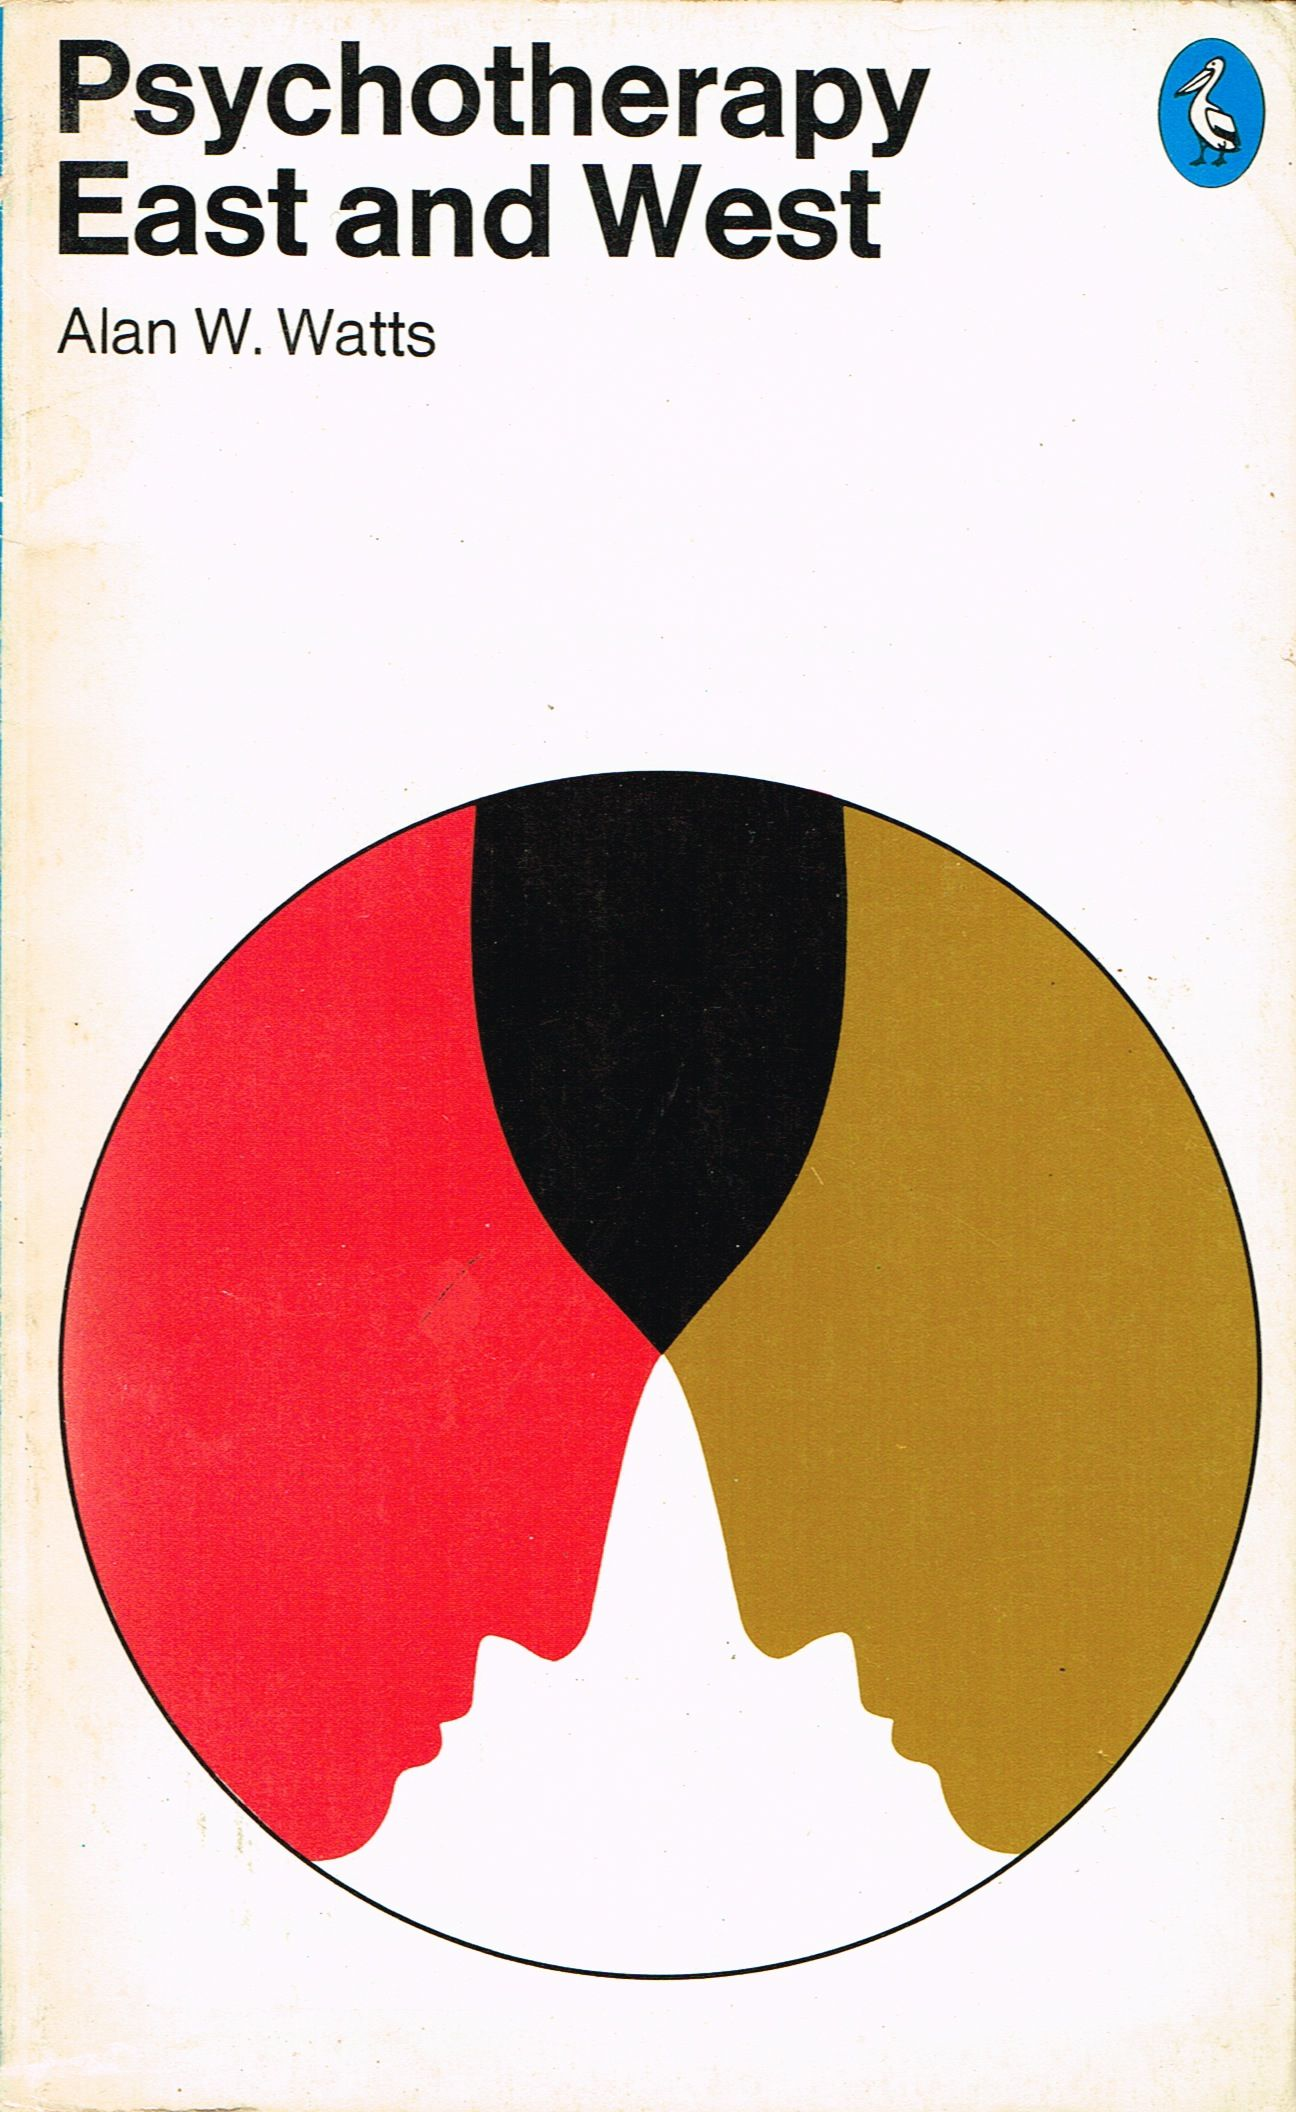 design by Catherine Flanders